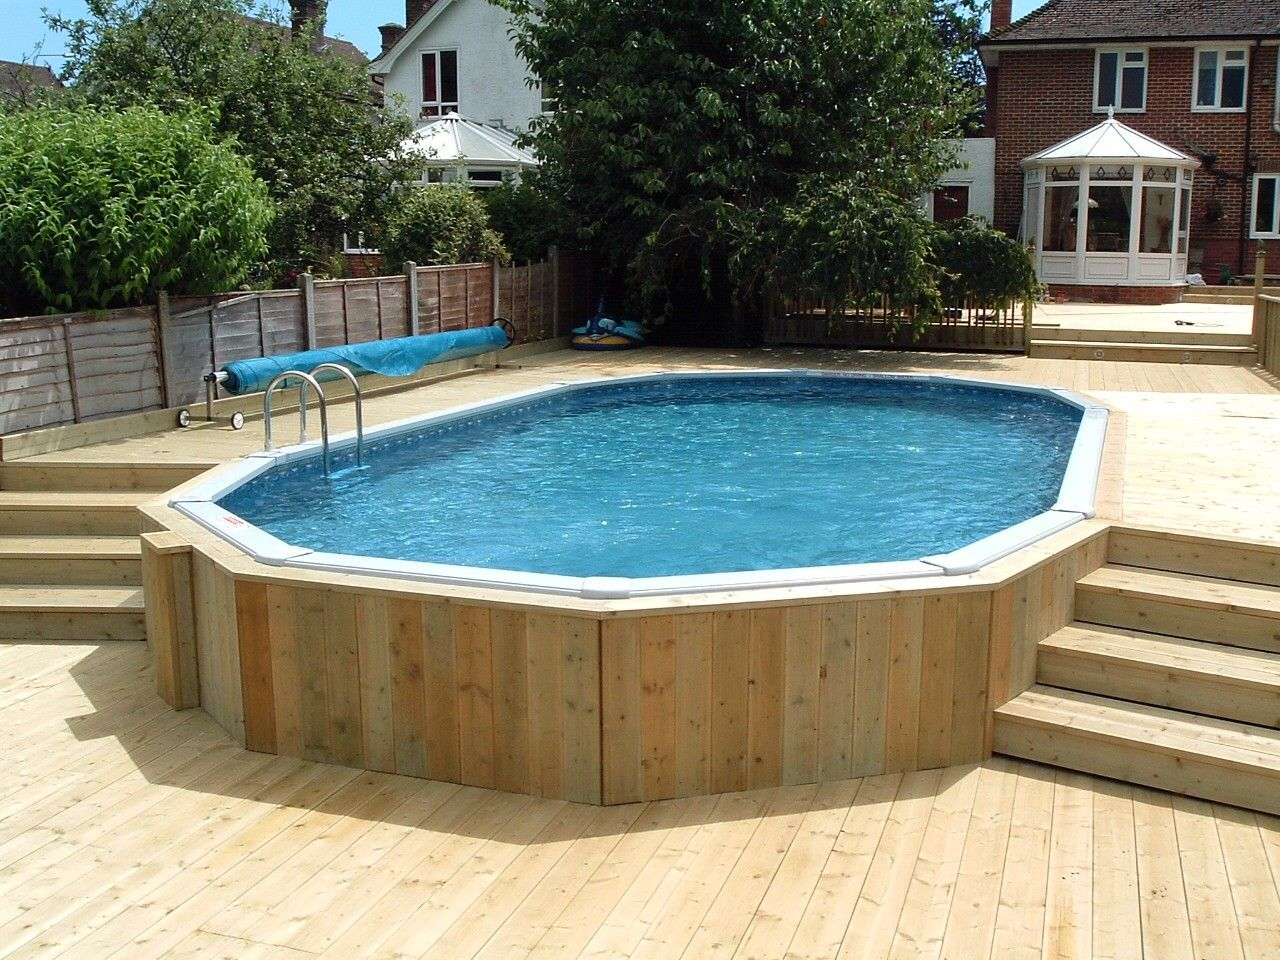 30 39 x 15 39 aluminium above ground pool with decking - Images of above ground pools ...